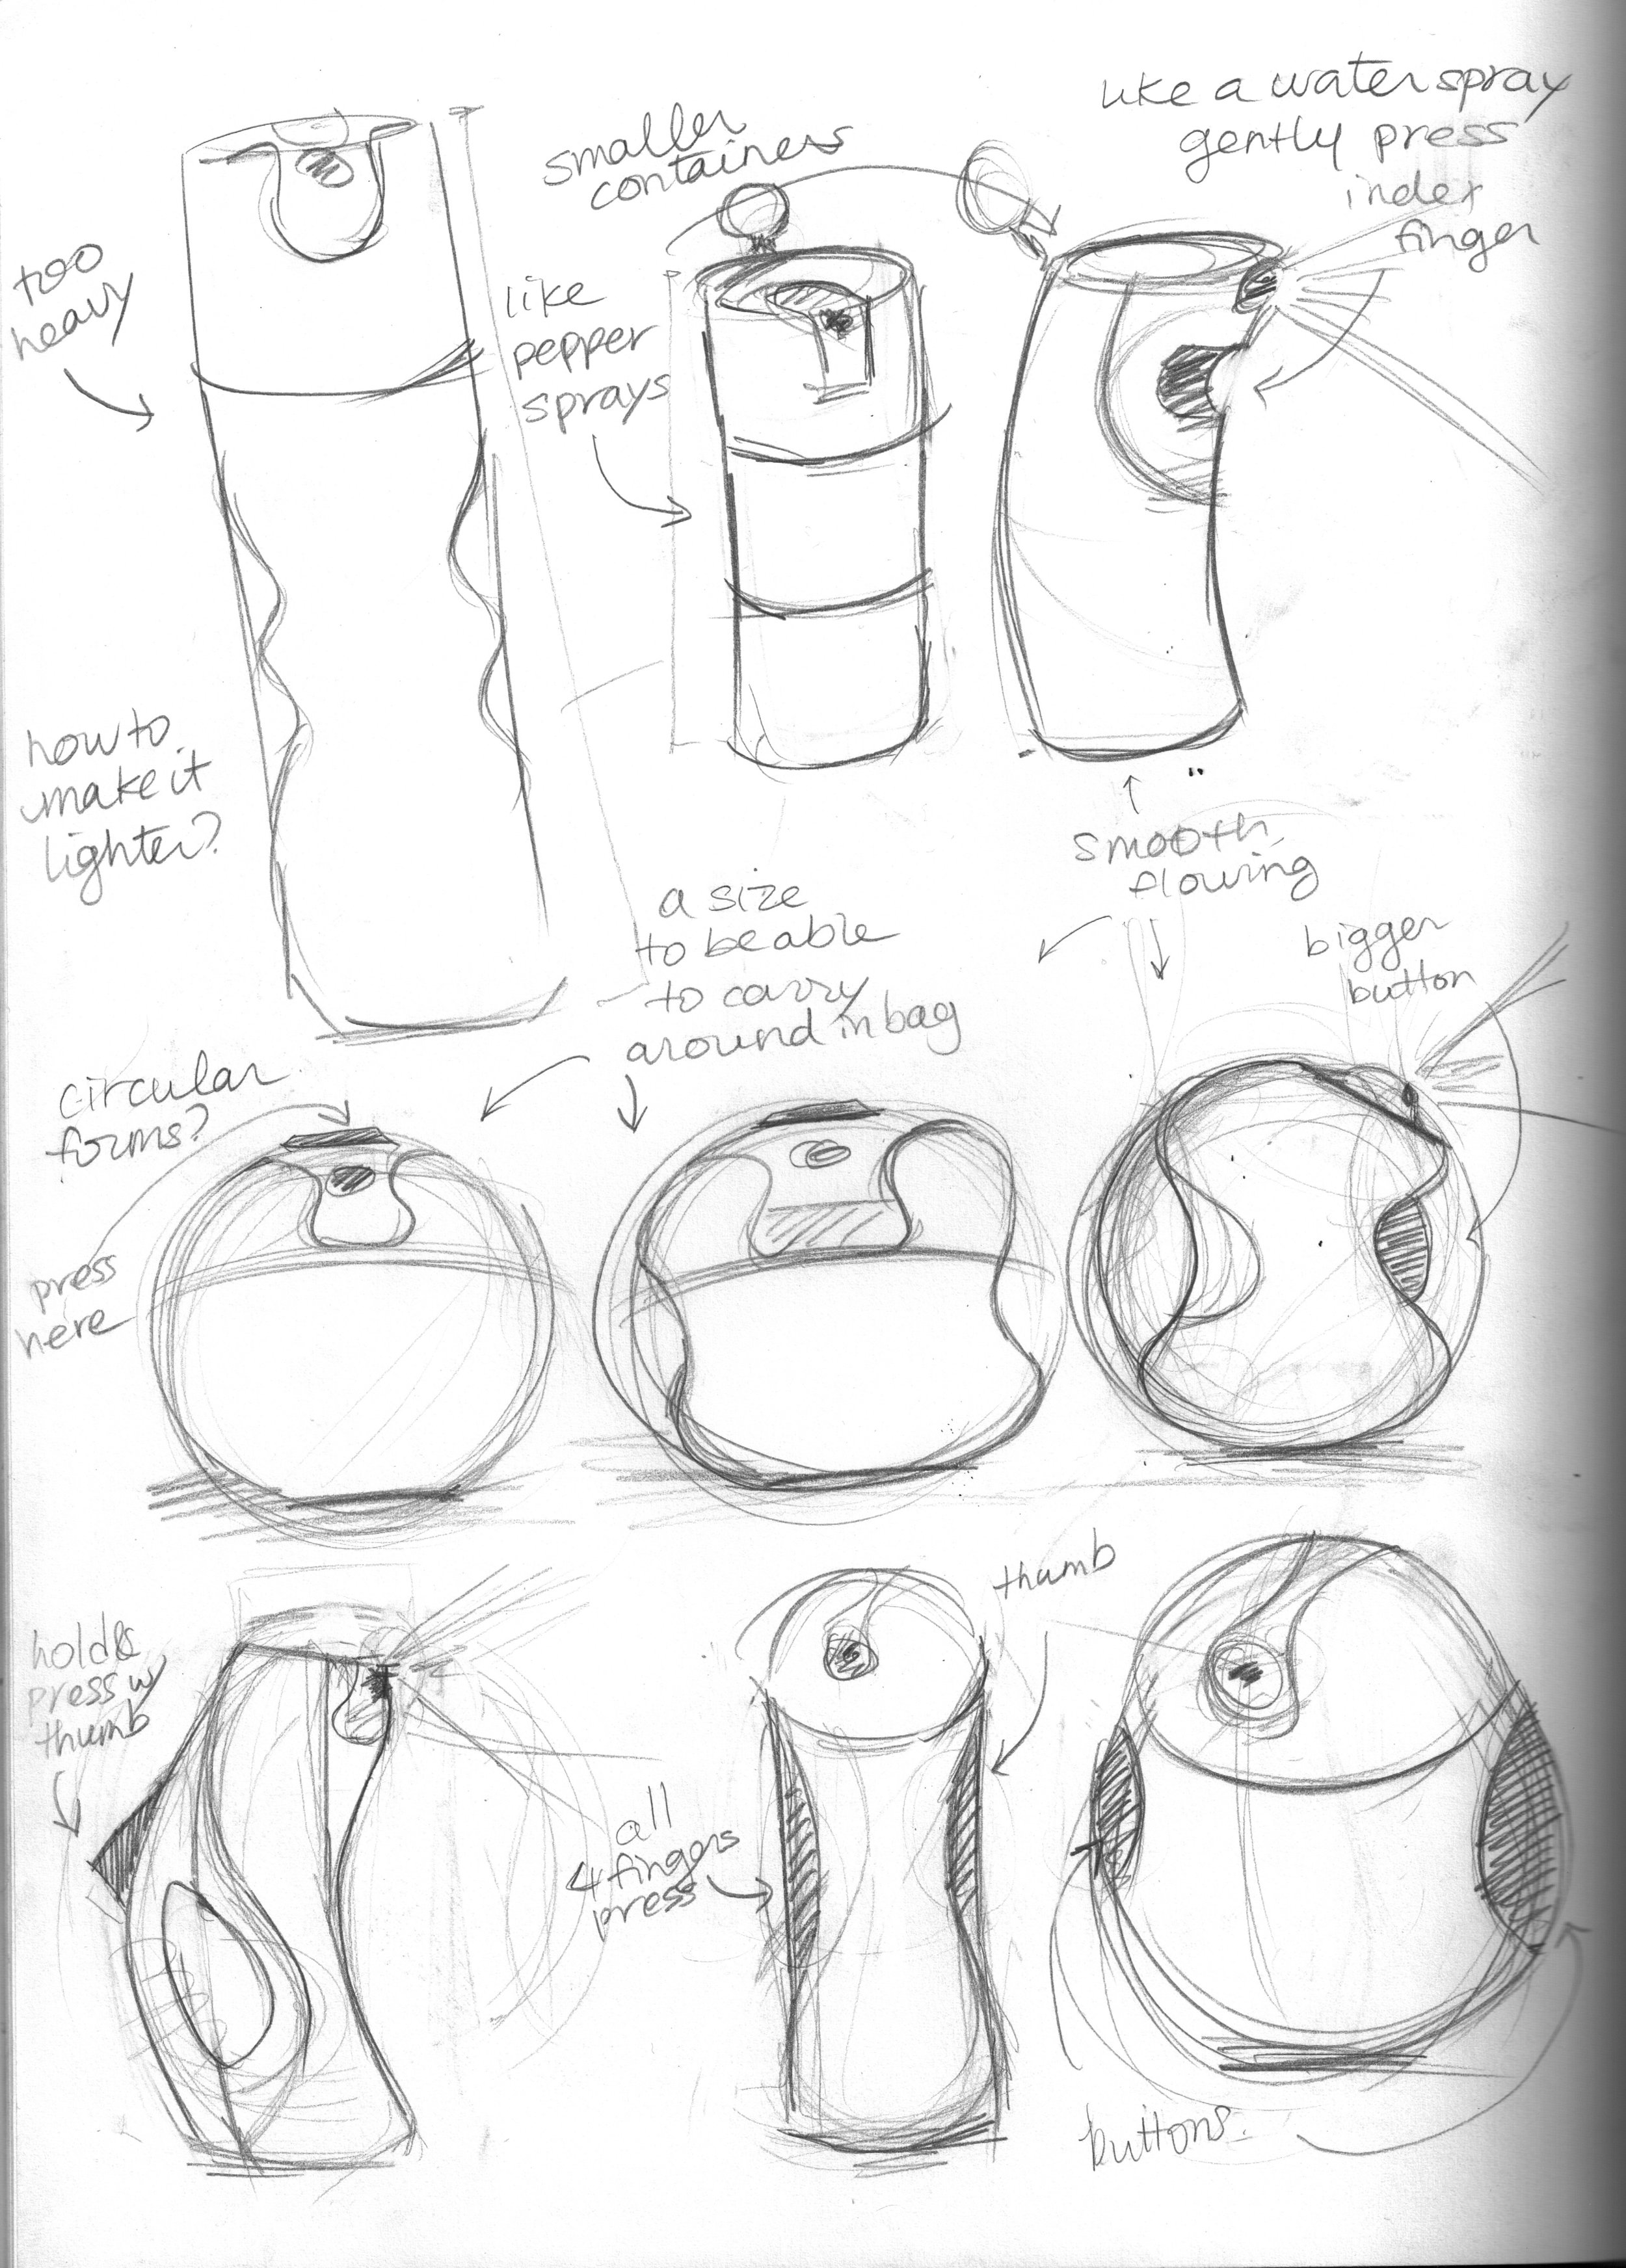 Pack02_ProductSketch 1.jpeg